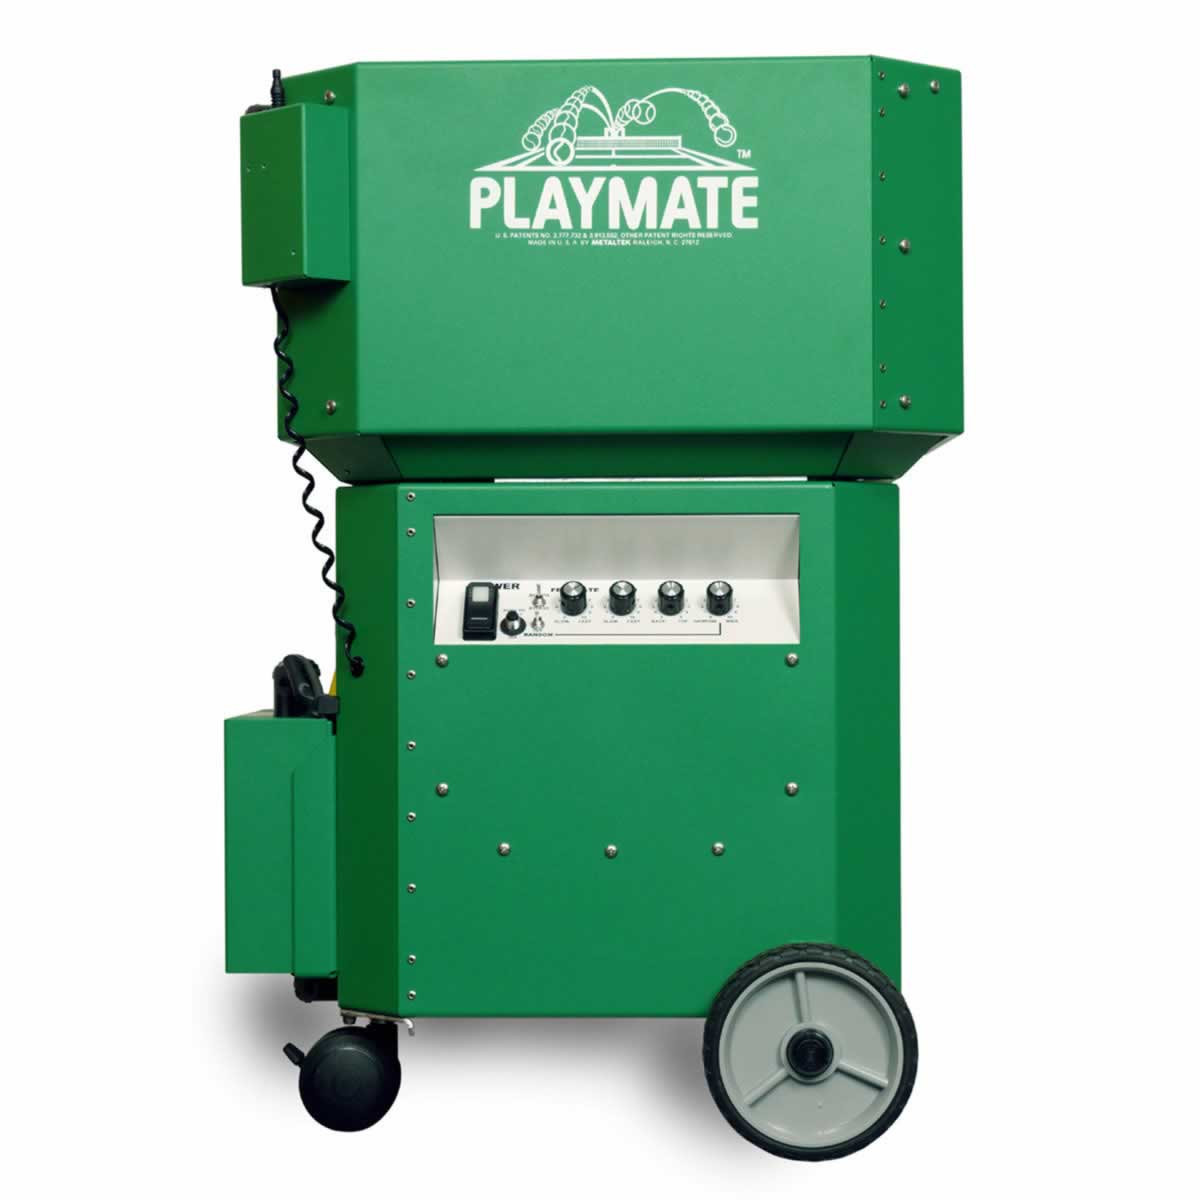 PLAYMATE Playmate Volley Ball Machine